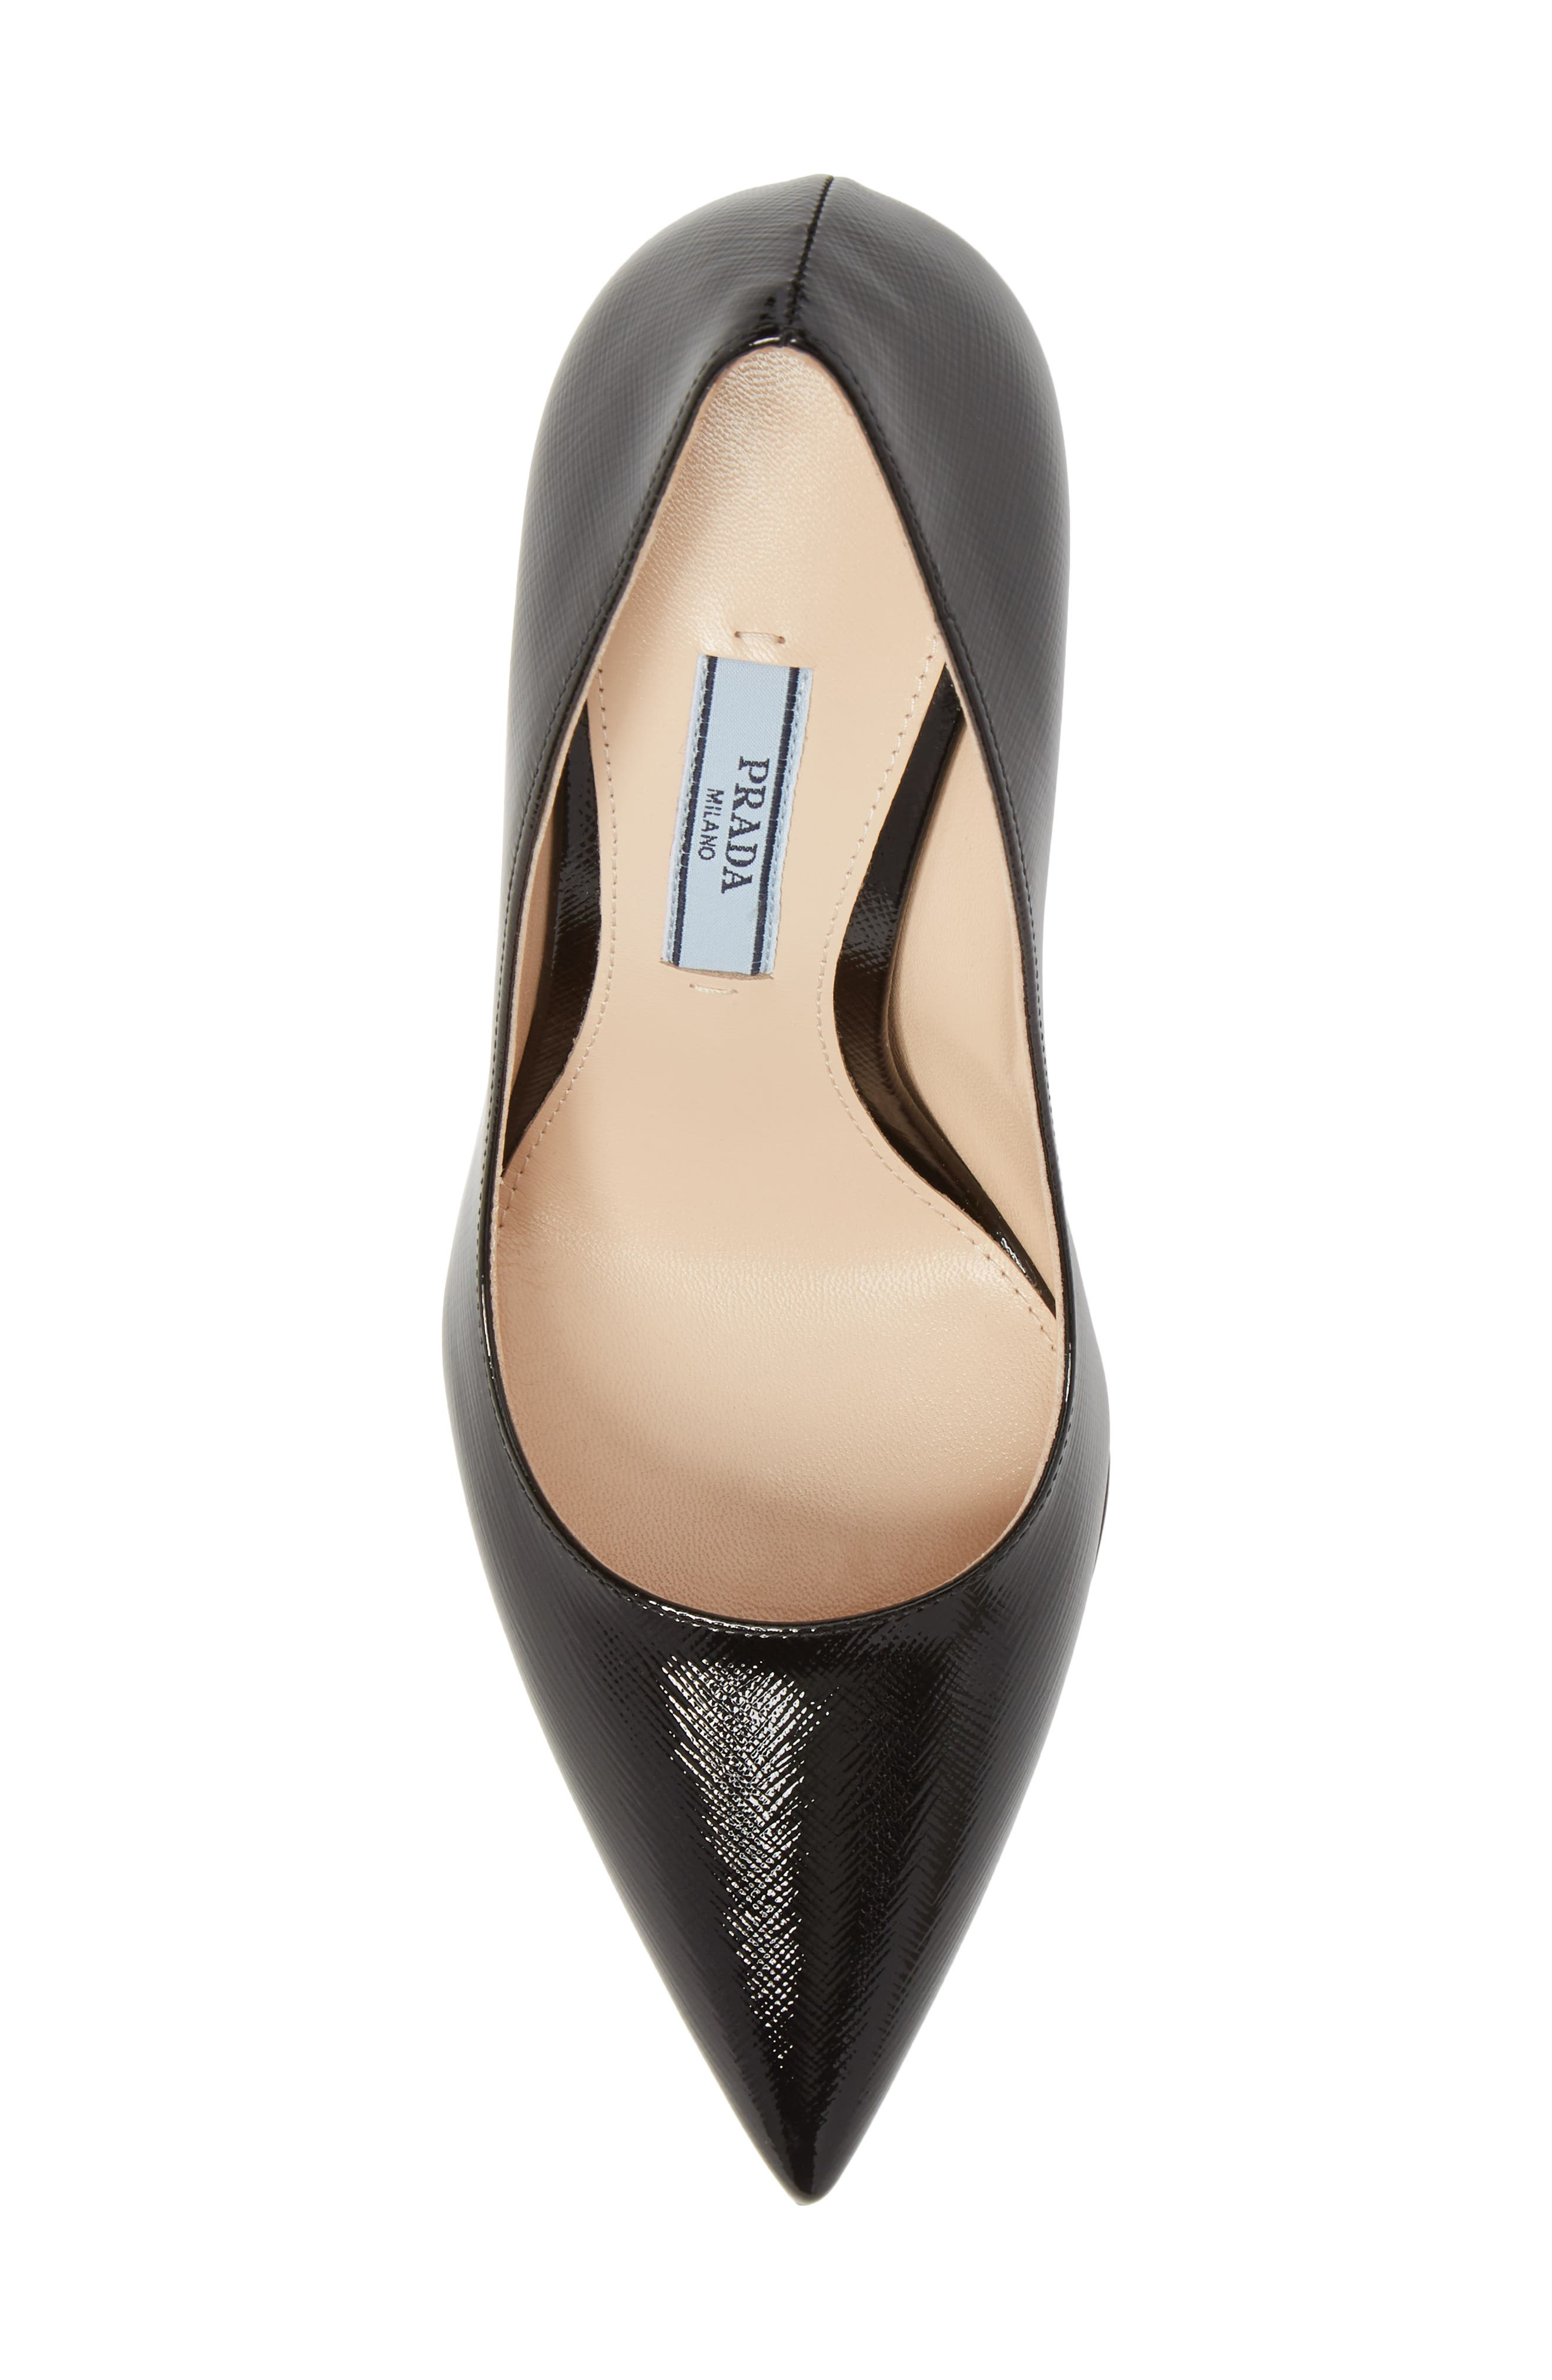 PRADA, Pointy Toe Pump, Alternate thumbnail 5, color, BLACK